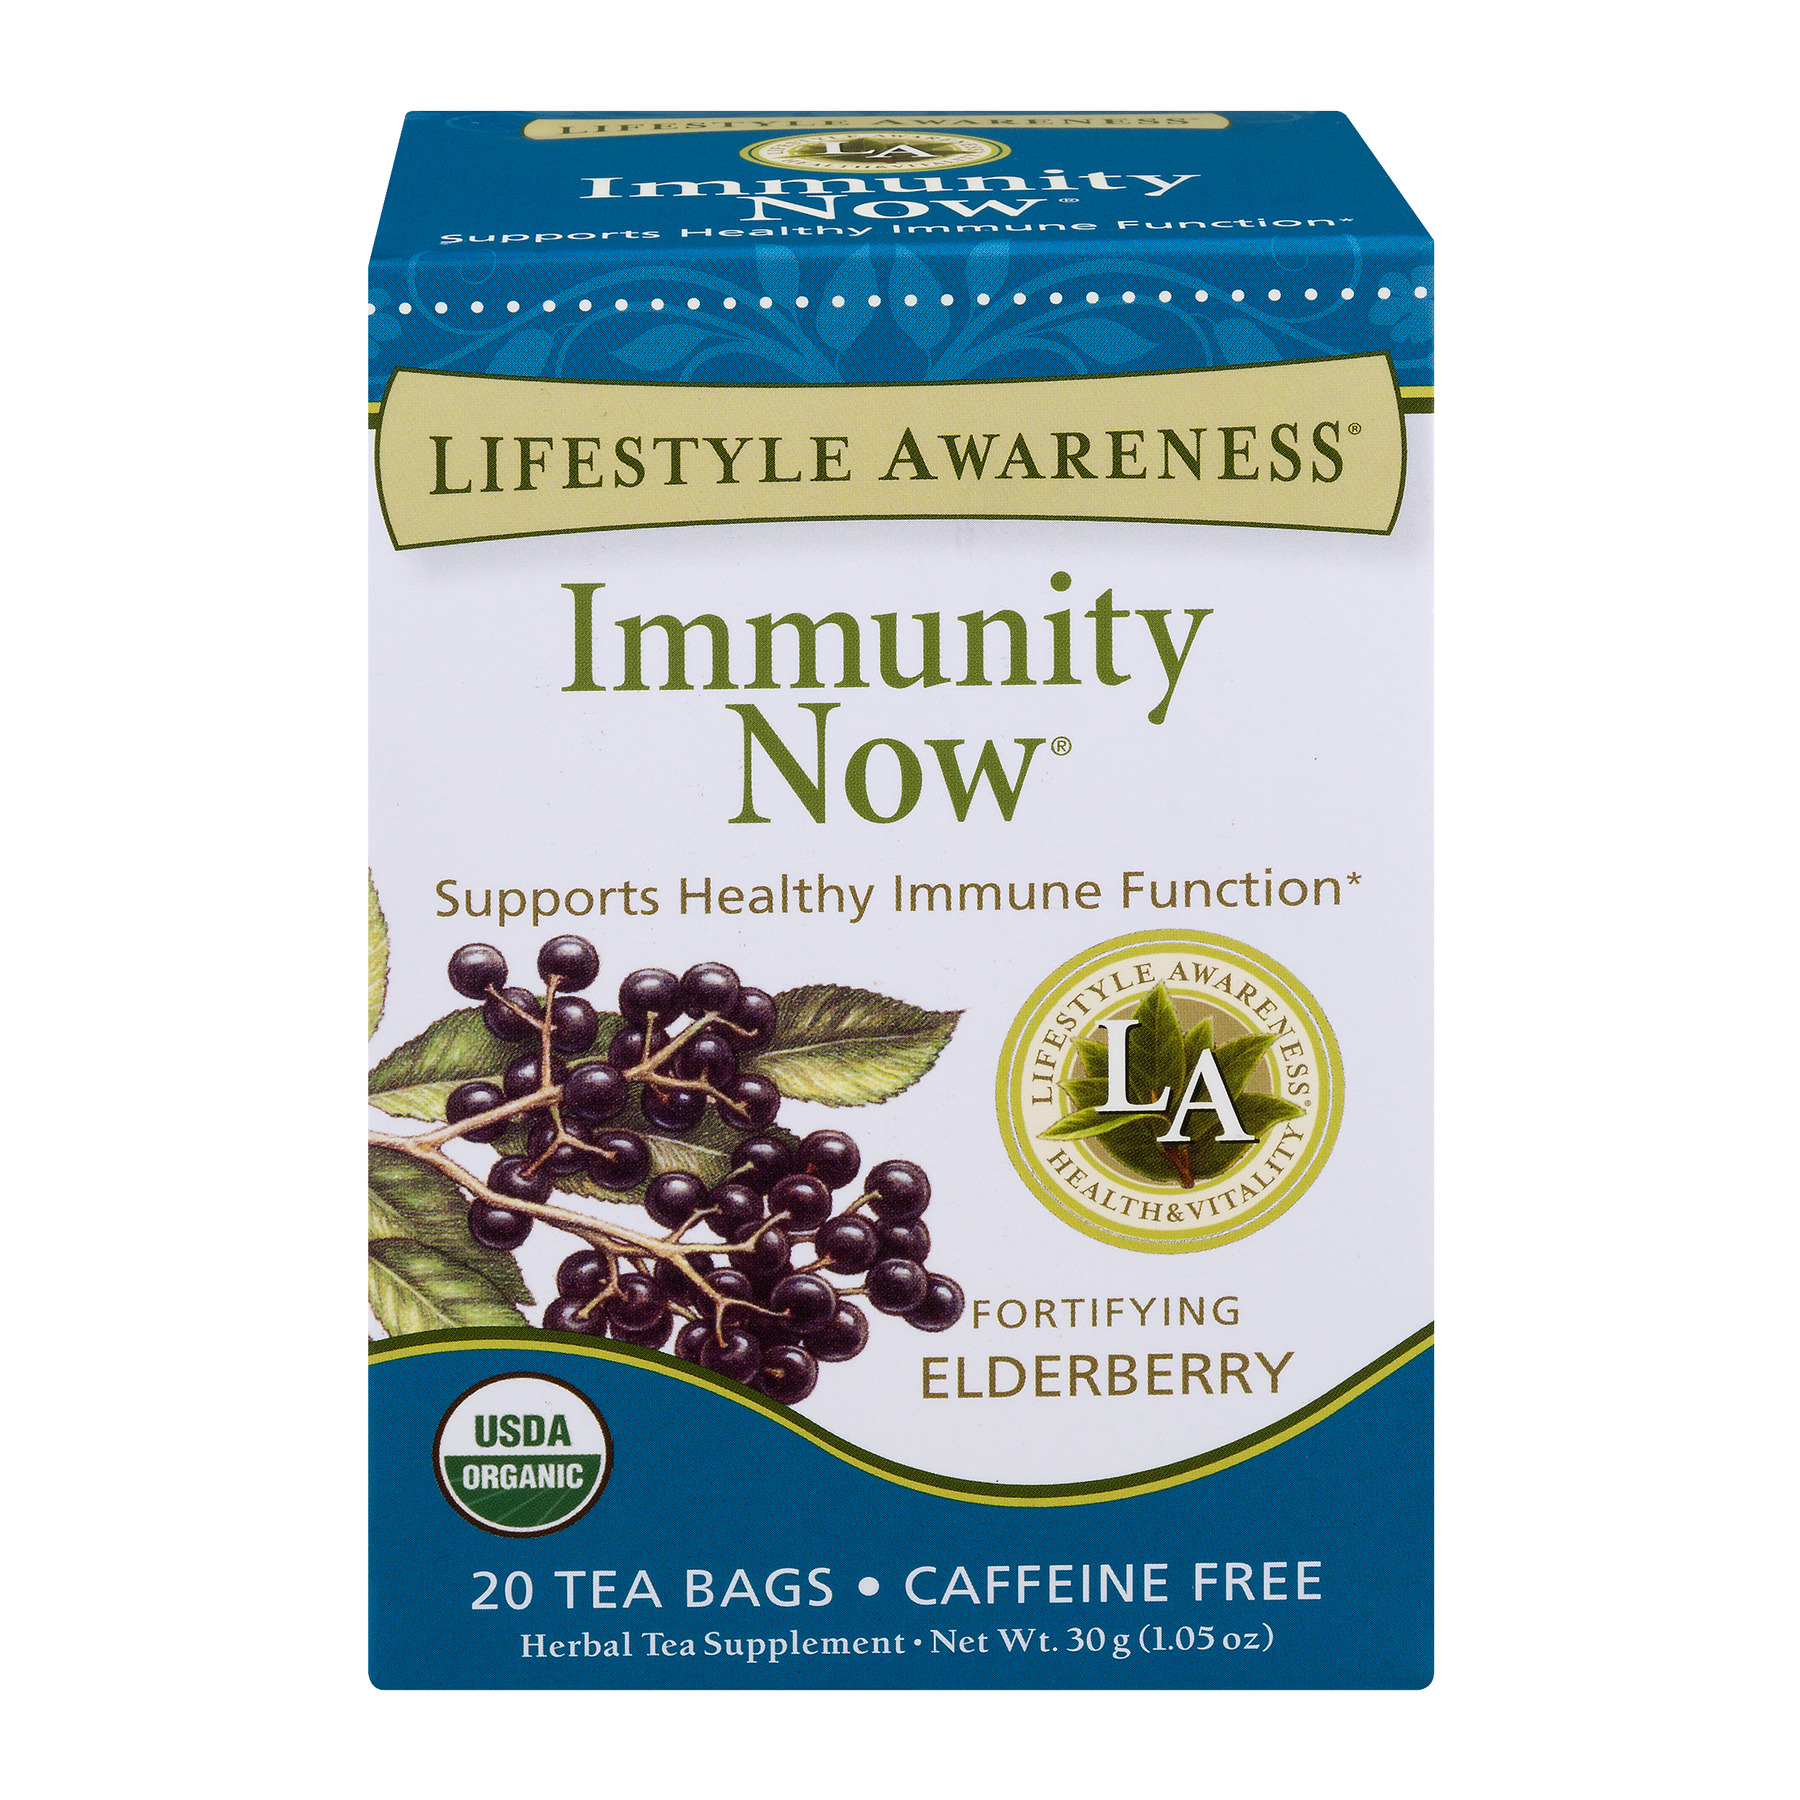 Lifestyle Awareness Immunity Now Tea with Fortifying Elderberry, Caffeine Free, 20 Tea Bags, Pack of 6